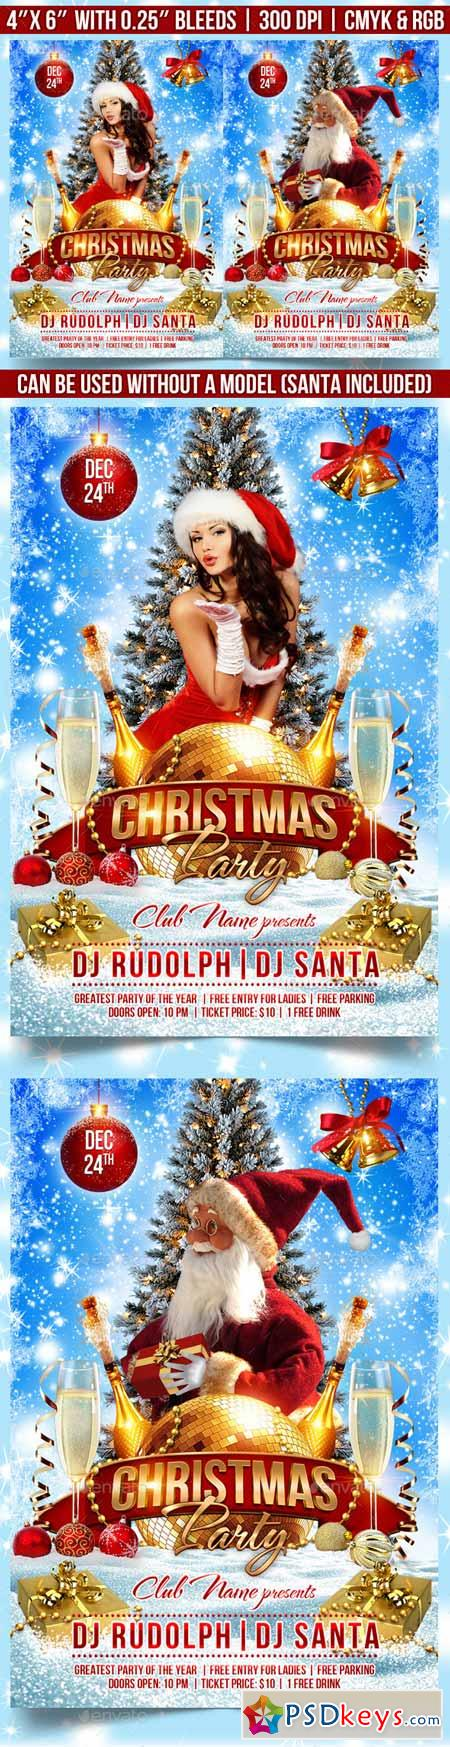 Christmas Party Flyer Template 9298329